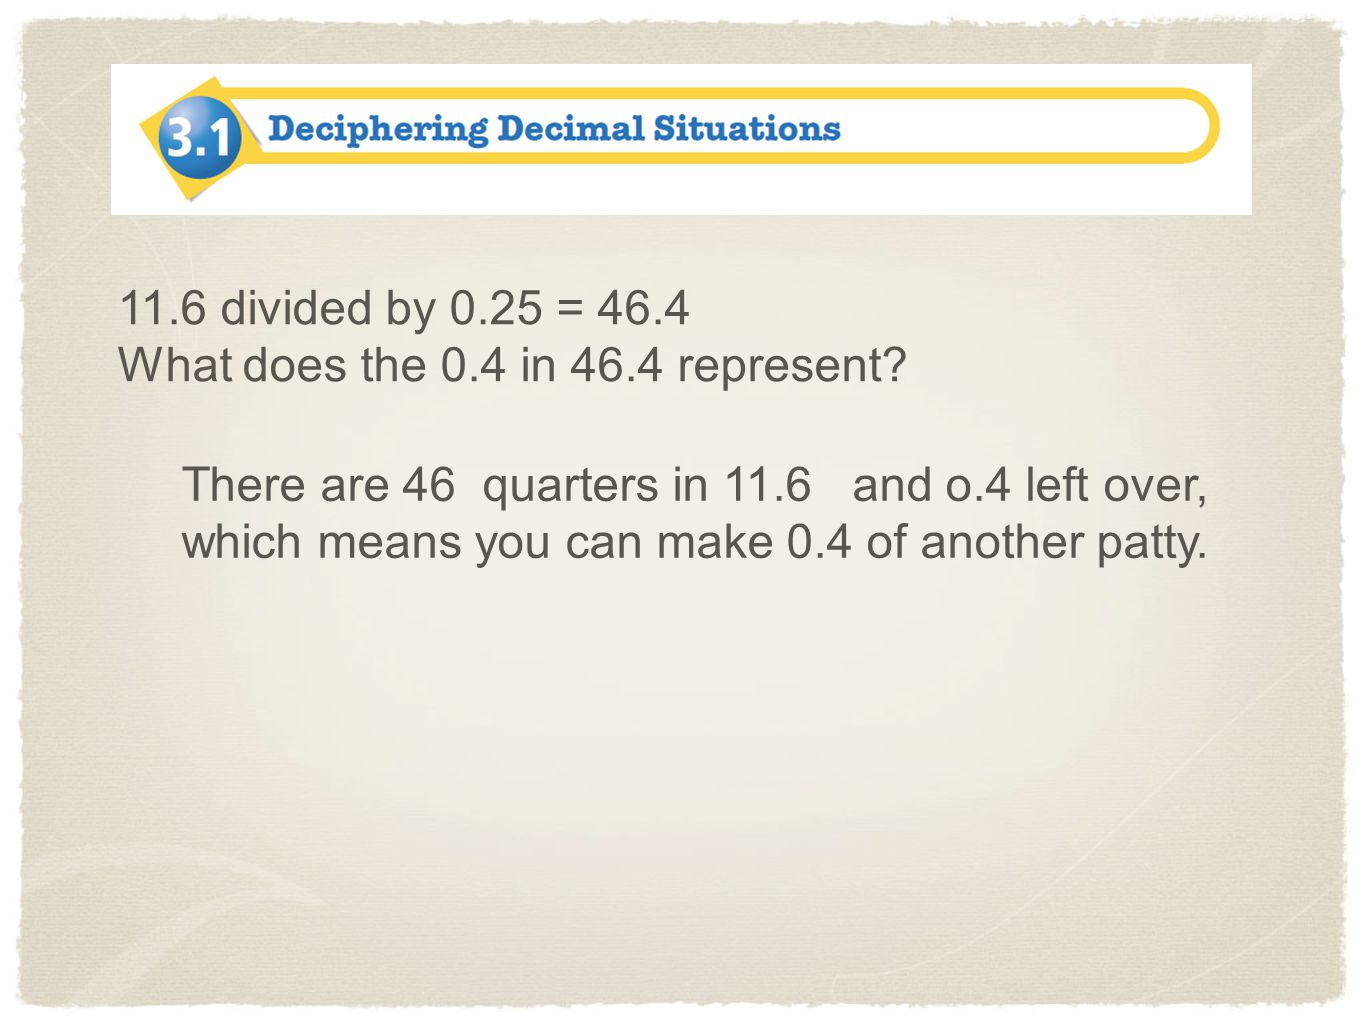 11.6 divided by 0.25 = 46.4 What does the 0.4 in 46.4 represent